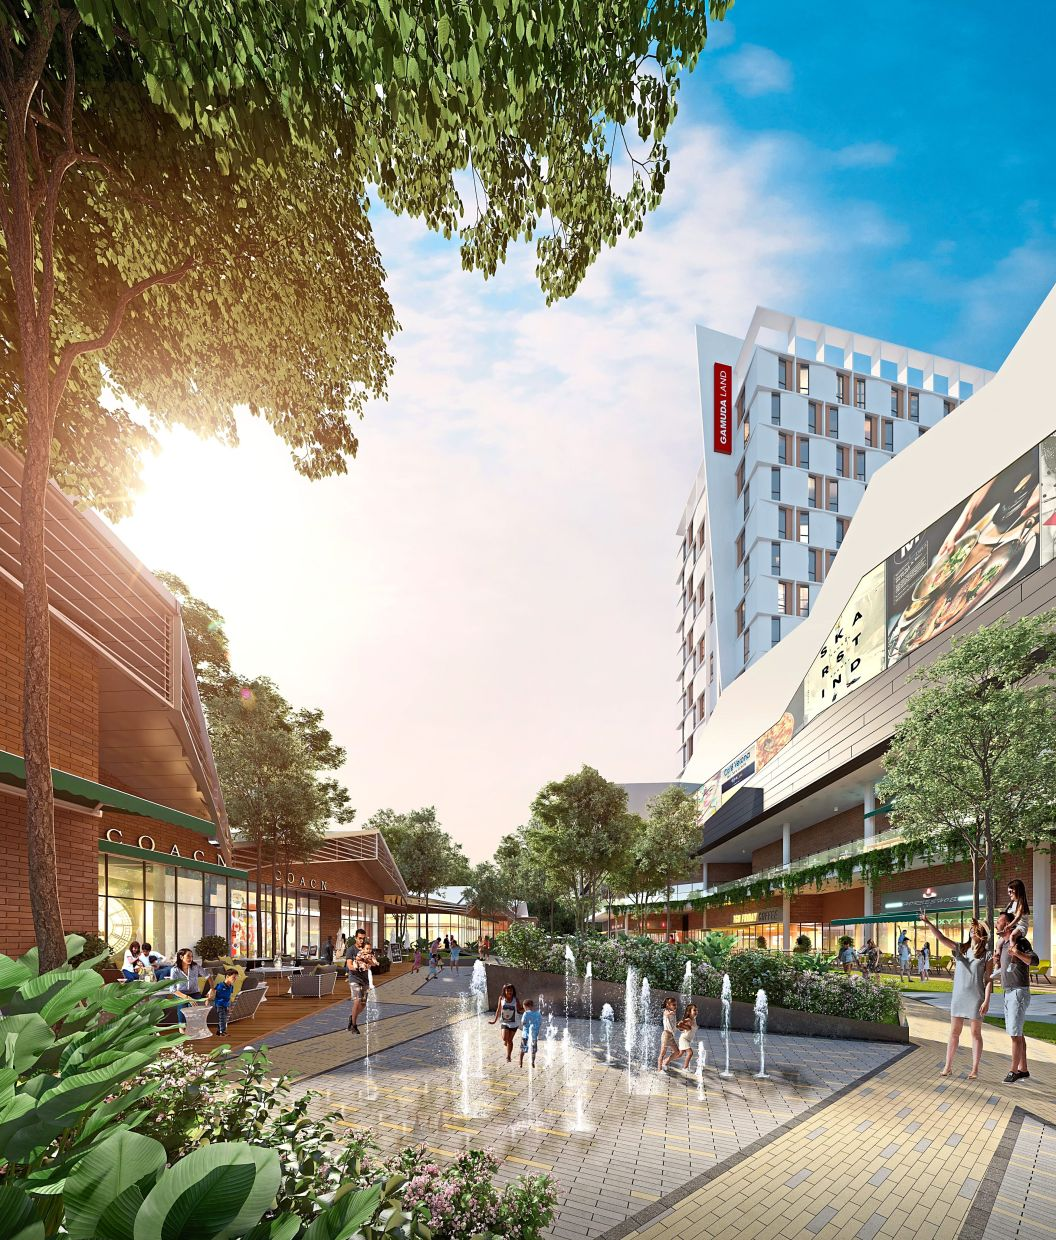 Quayside Mall's design addresses growing demand for open retail spaces post-lockdown.